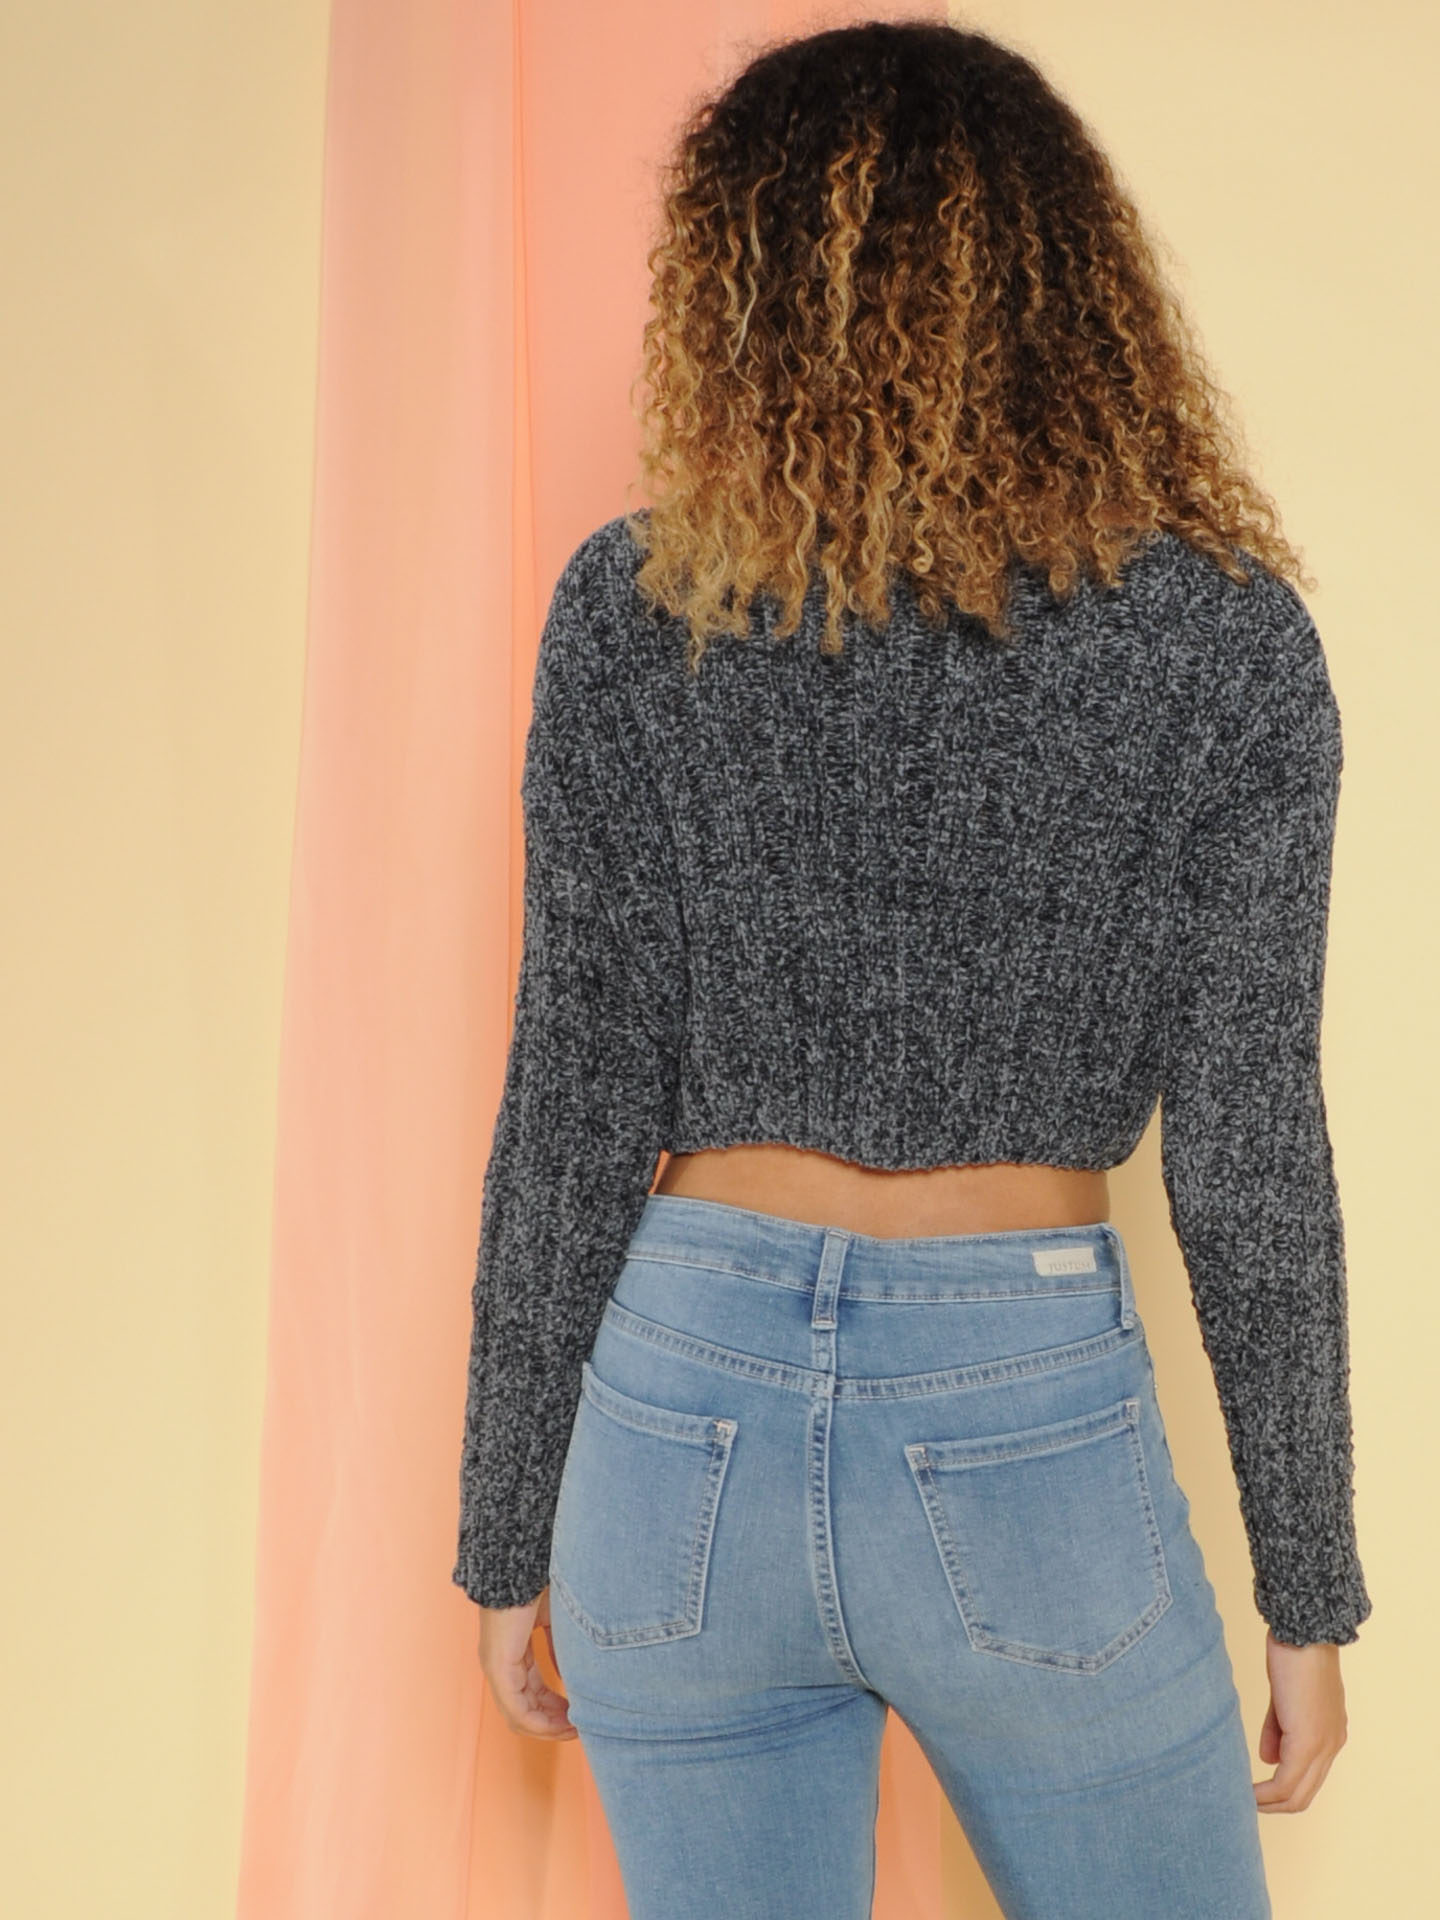 Trudy Sweater Super Soft Knit Crop Charcoal Back